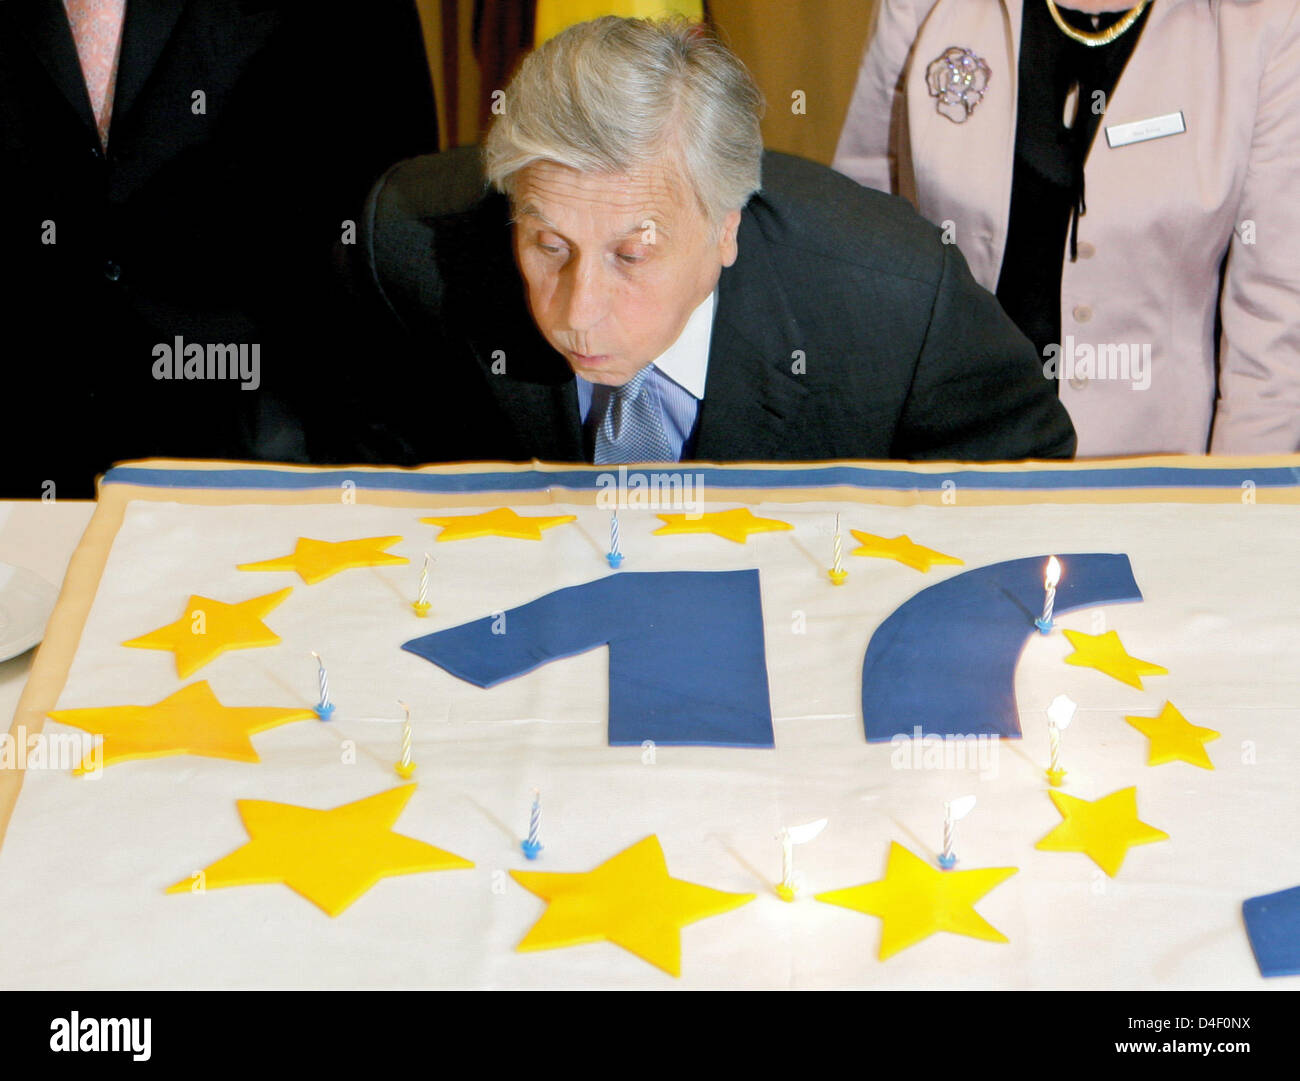 The President of the European Central Bank (ECB) Jean-Claude Trichet blows out the candles of a birthday cake at - Stock Image